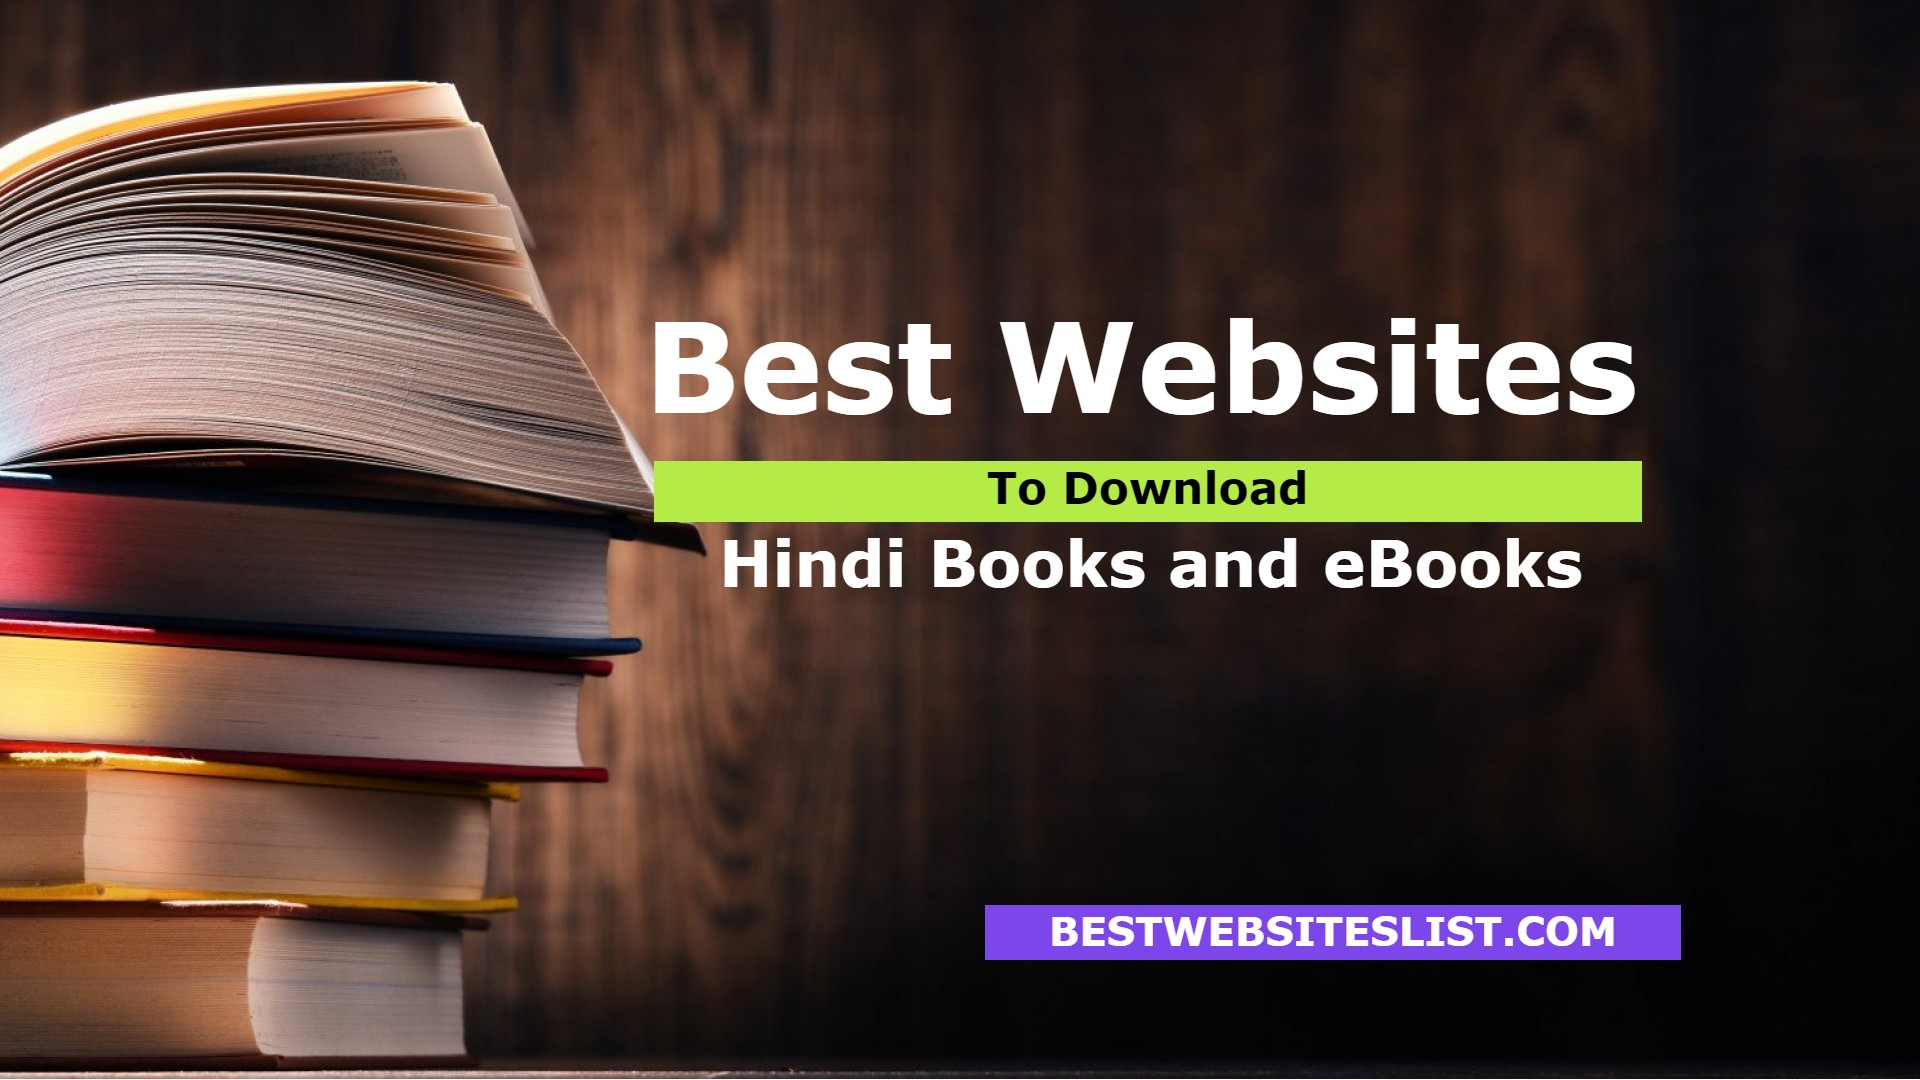 Best Websites To Download Hindi Books and eBooks